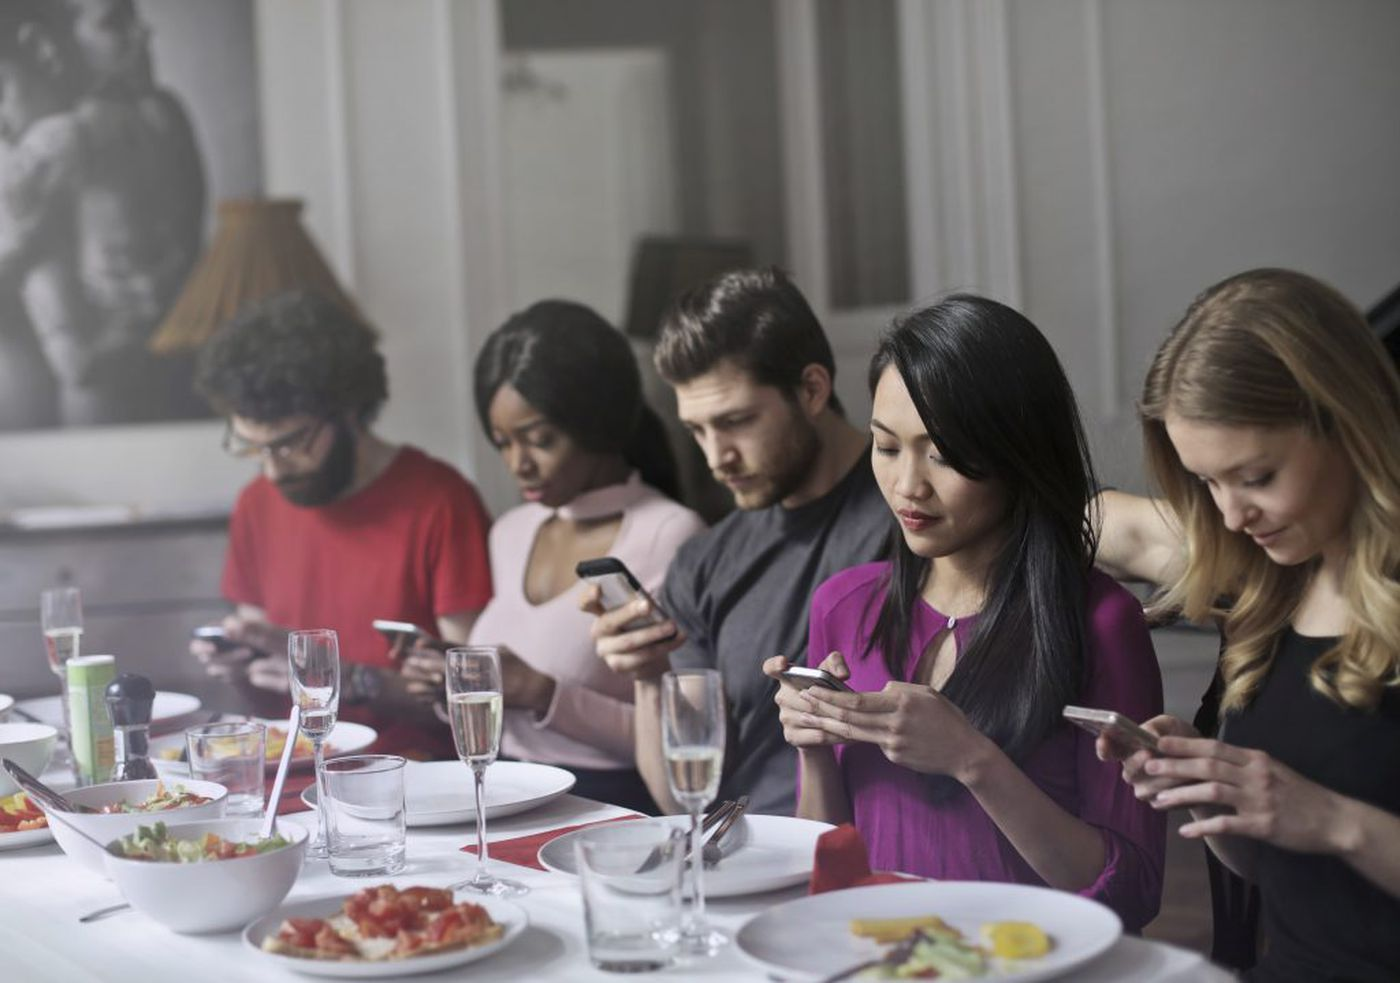 Top tips on how to deal with phone addiction